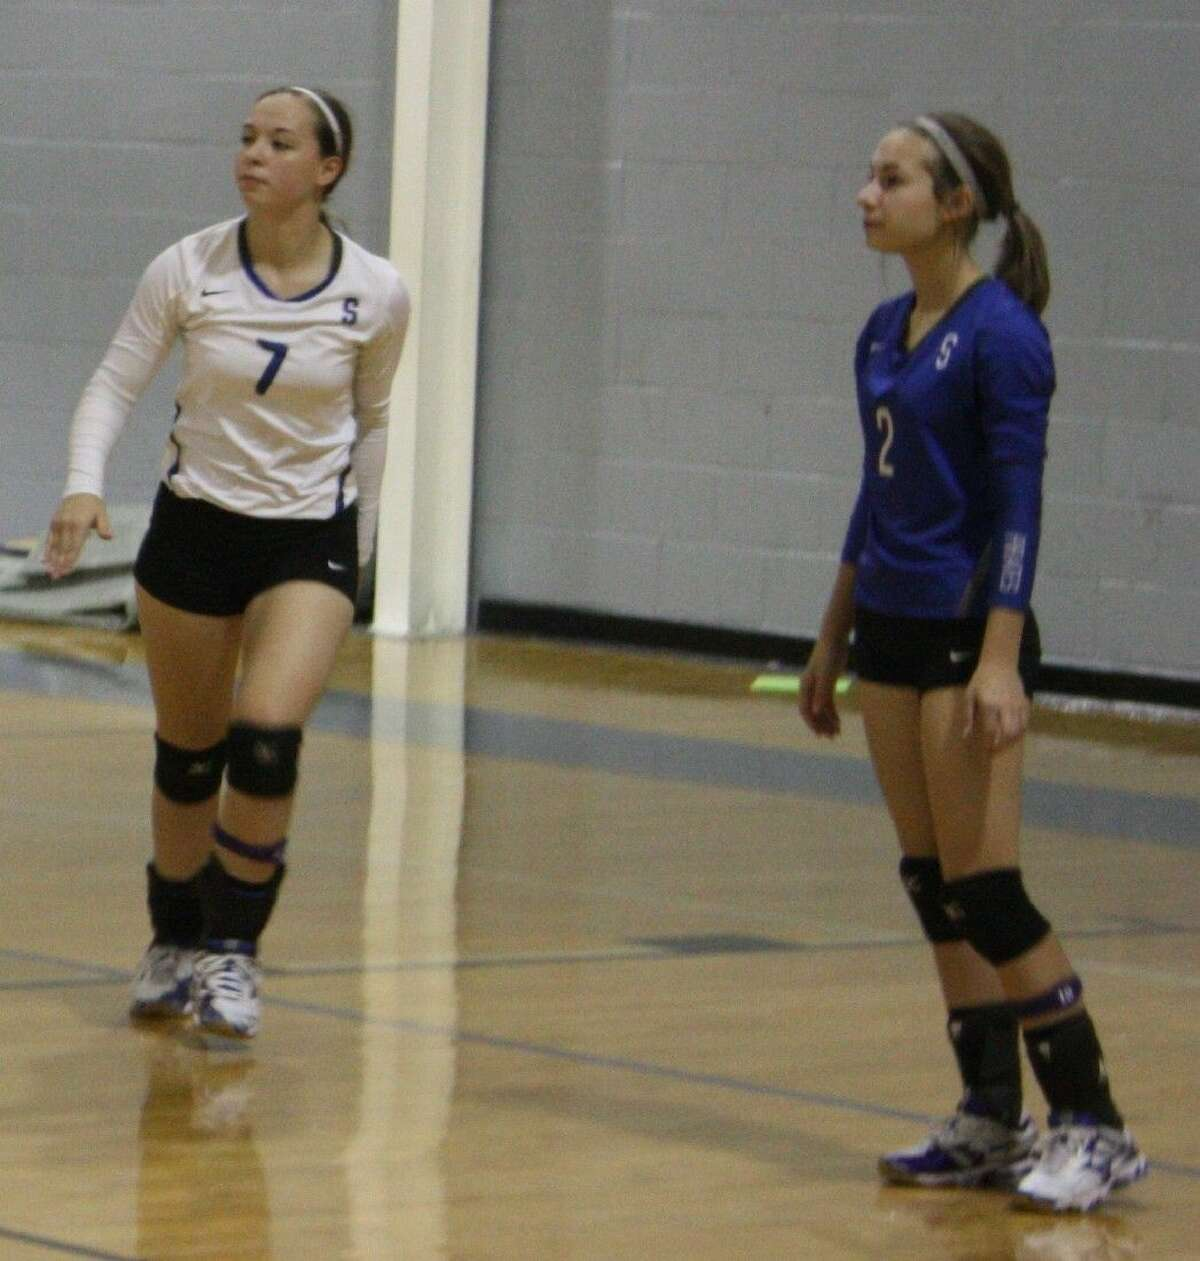 Shelby Brawner (7) of the Lady Pirates adjusts her position while Emily Brawner (2) watches the action from afar.